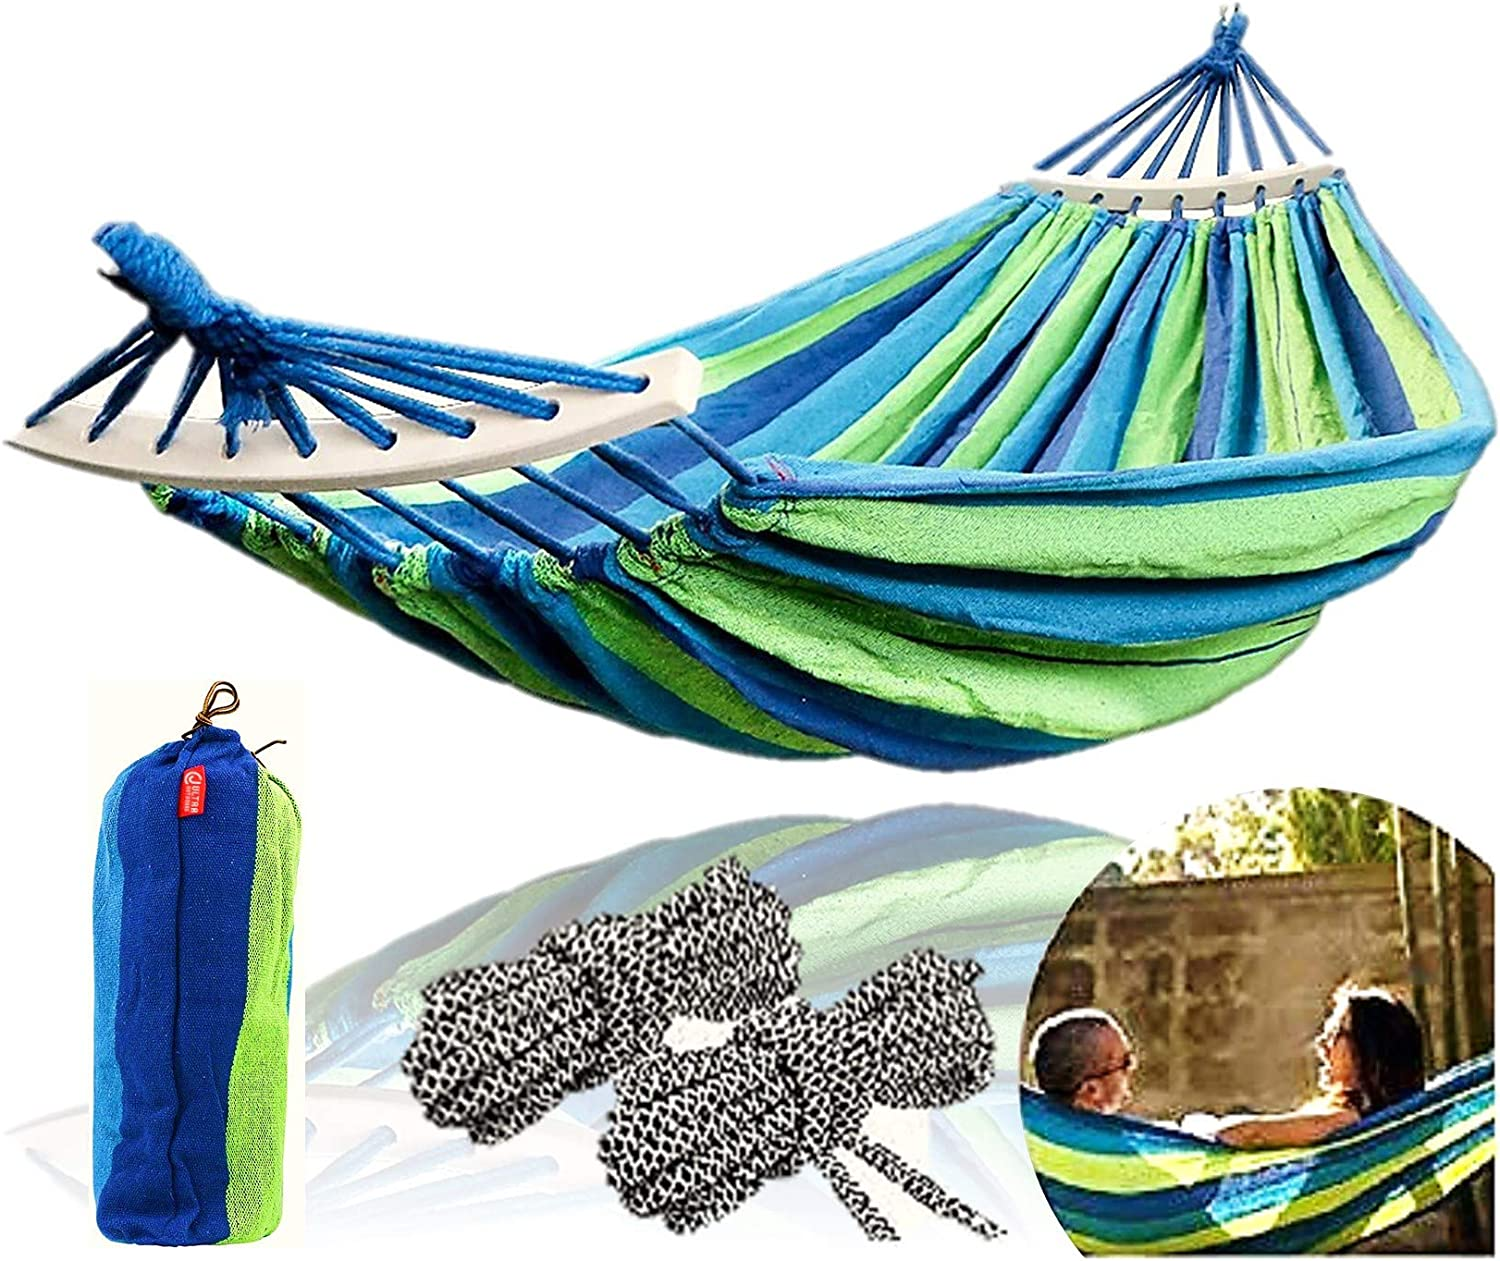 Hammock Portable Camping Cotton Canvas Indoor Outdoor Tree Garden Balcony Beach Backyard Hiking Outdoor Backpacking and Travel Swing Bed with Spreader Bar Travel